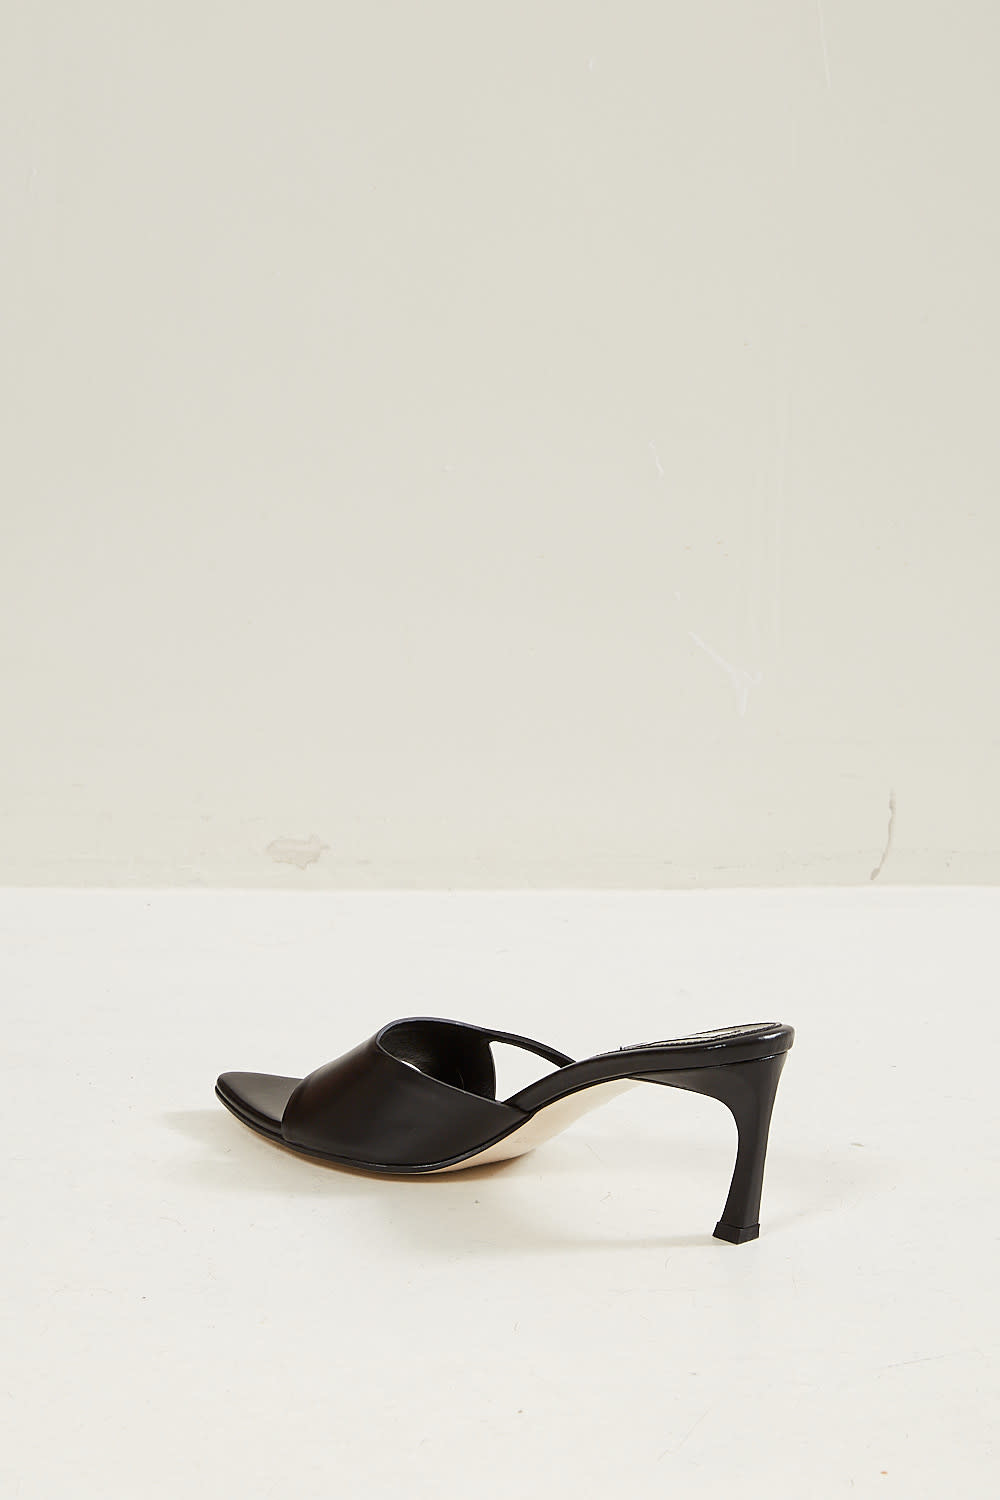 Reike Nen - Cut out pointed sandals